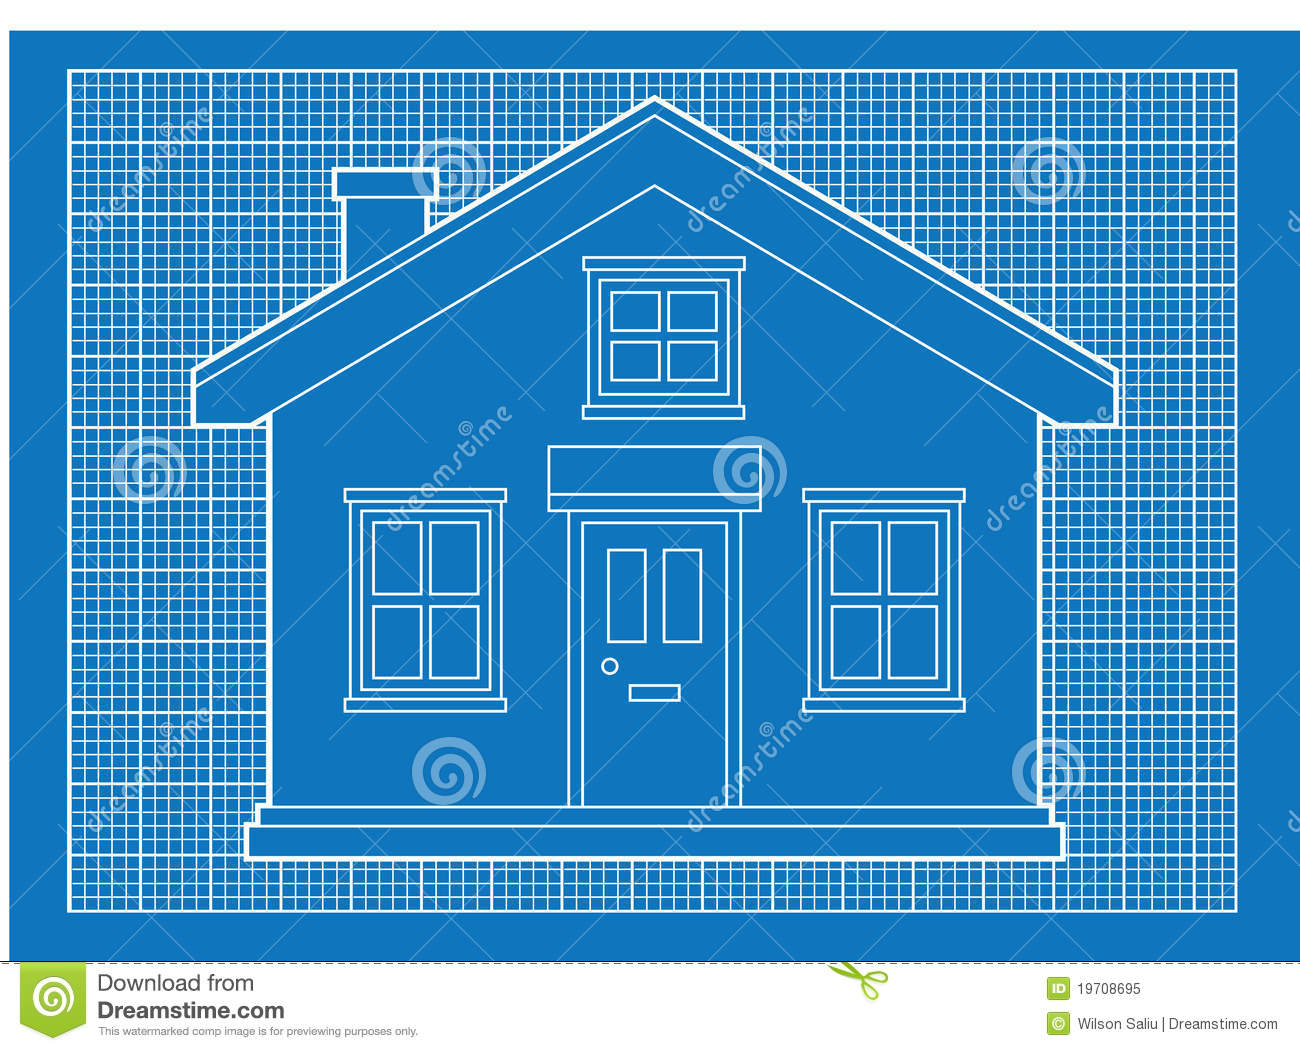 Simple House Blueprints Royalty Free Stock Photo - Image ...